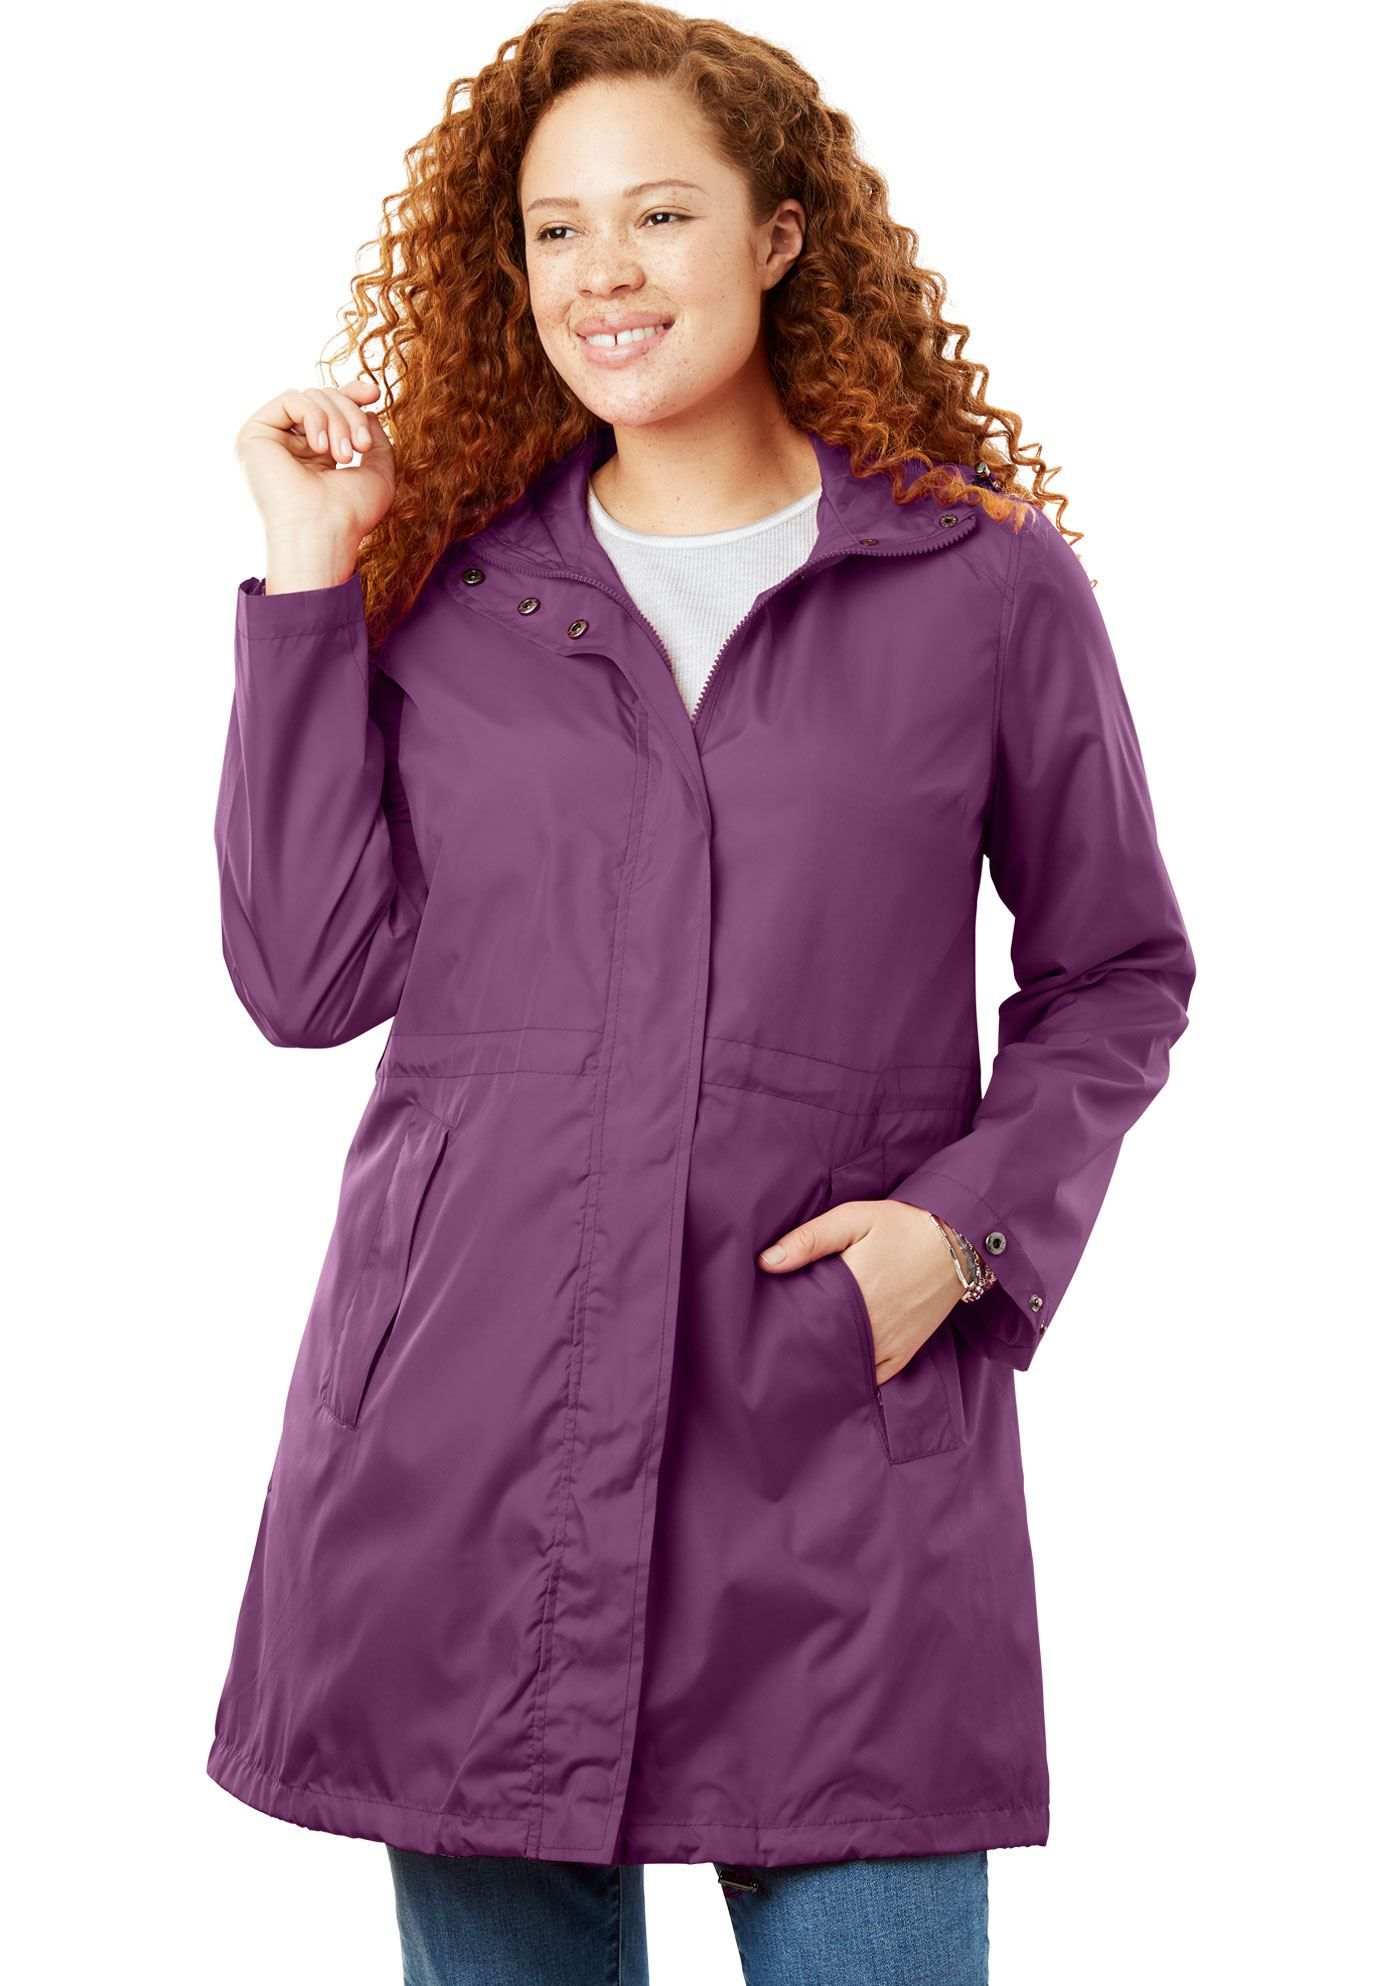 78e6c24ce99 Packable Anorak Raincoat - Women s Plus Size Clothing